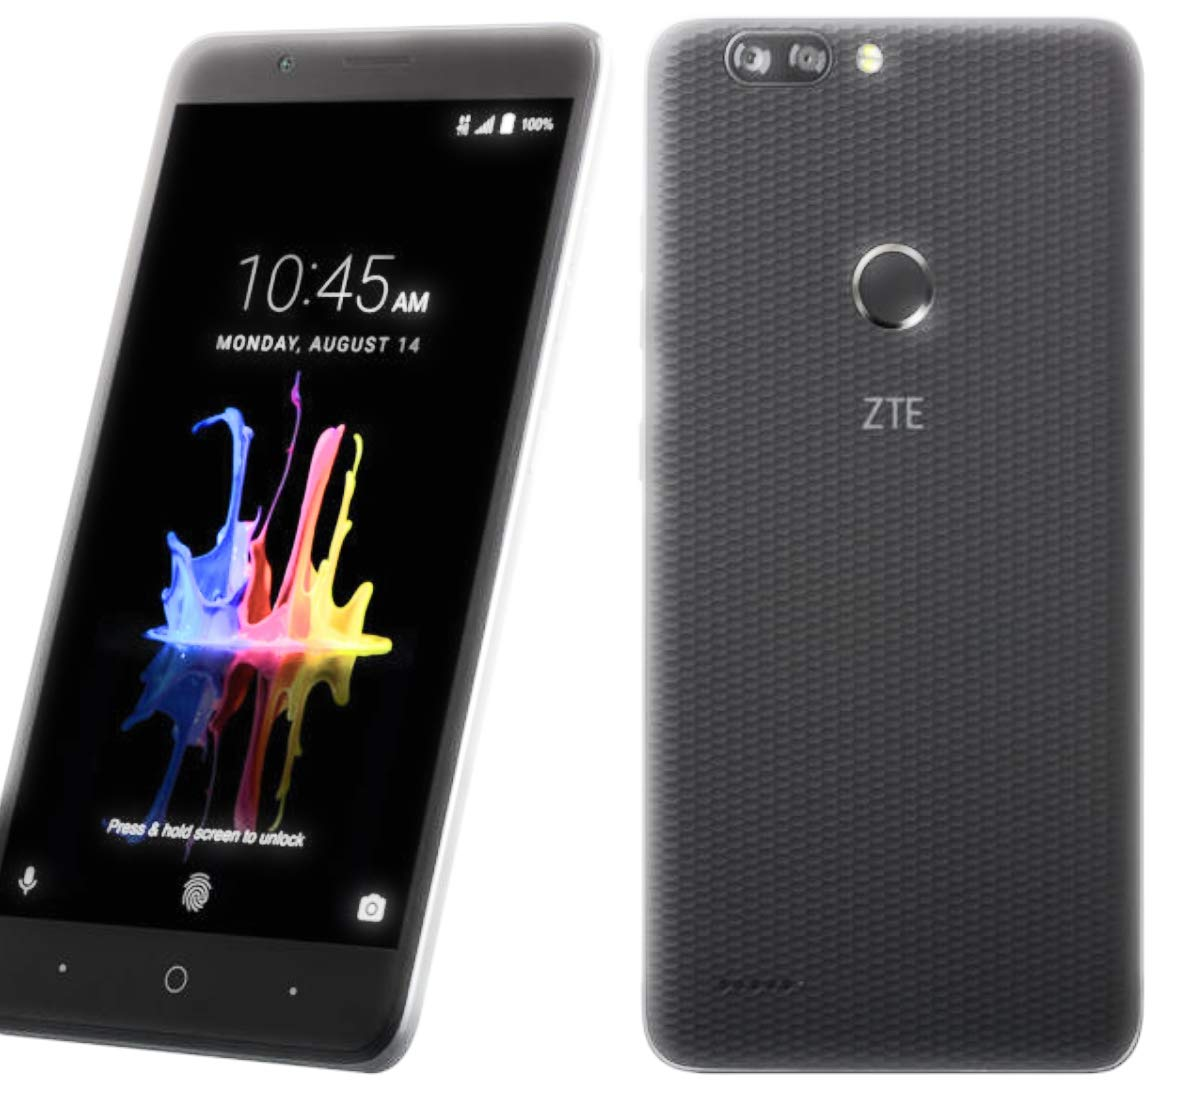 ZTE Blade Z MAX Z982- Best phone for battery